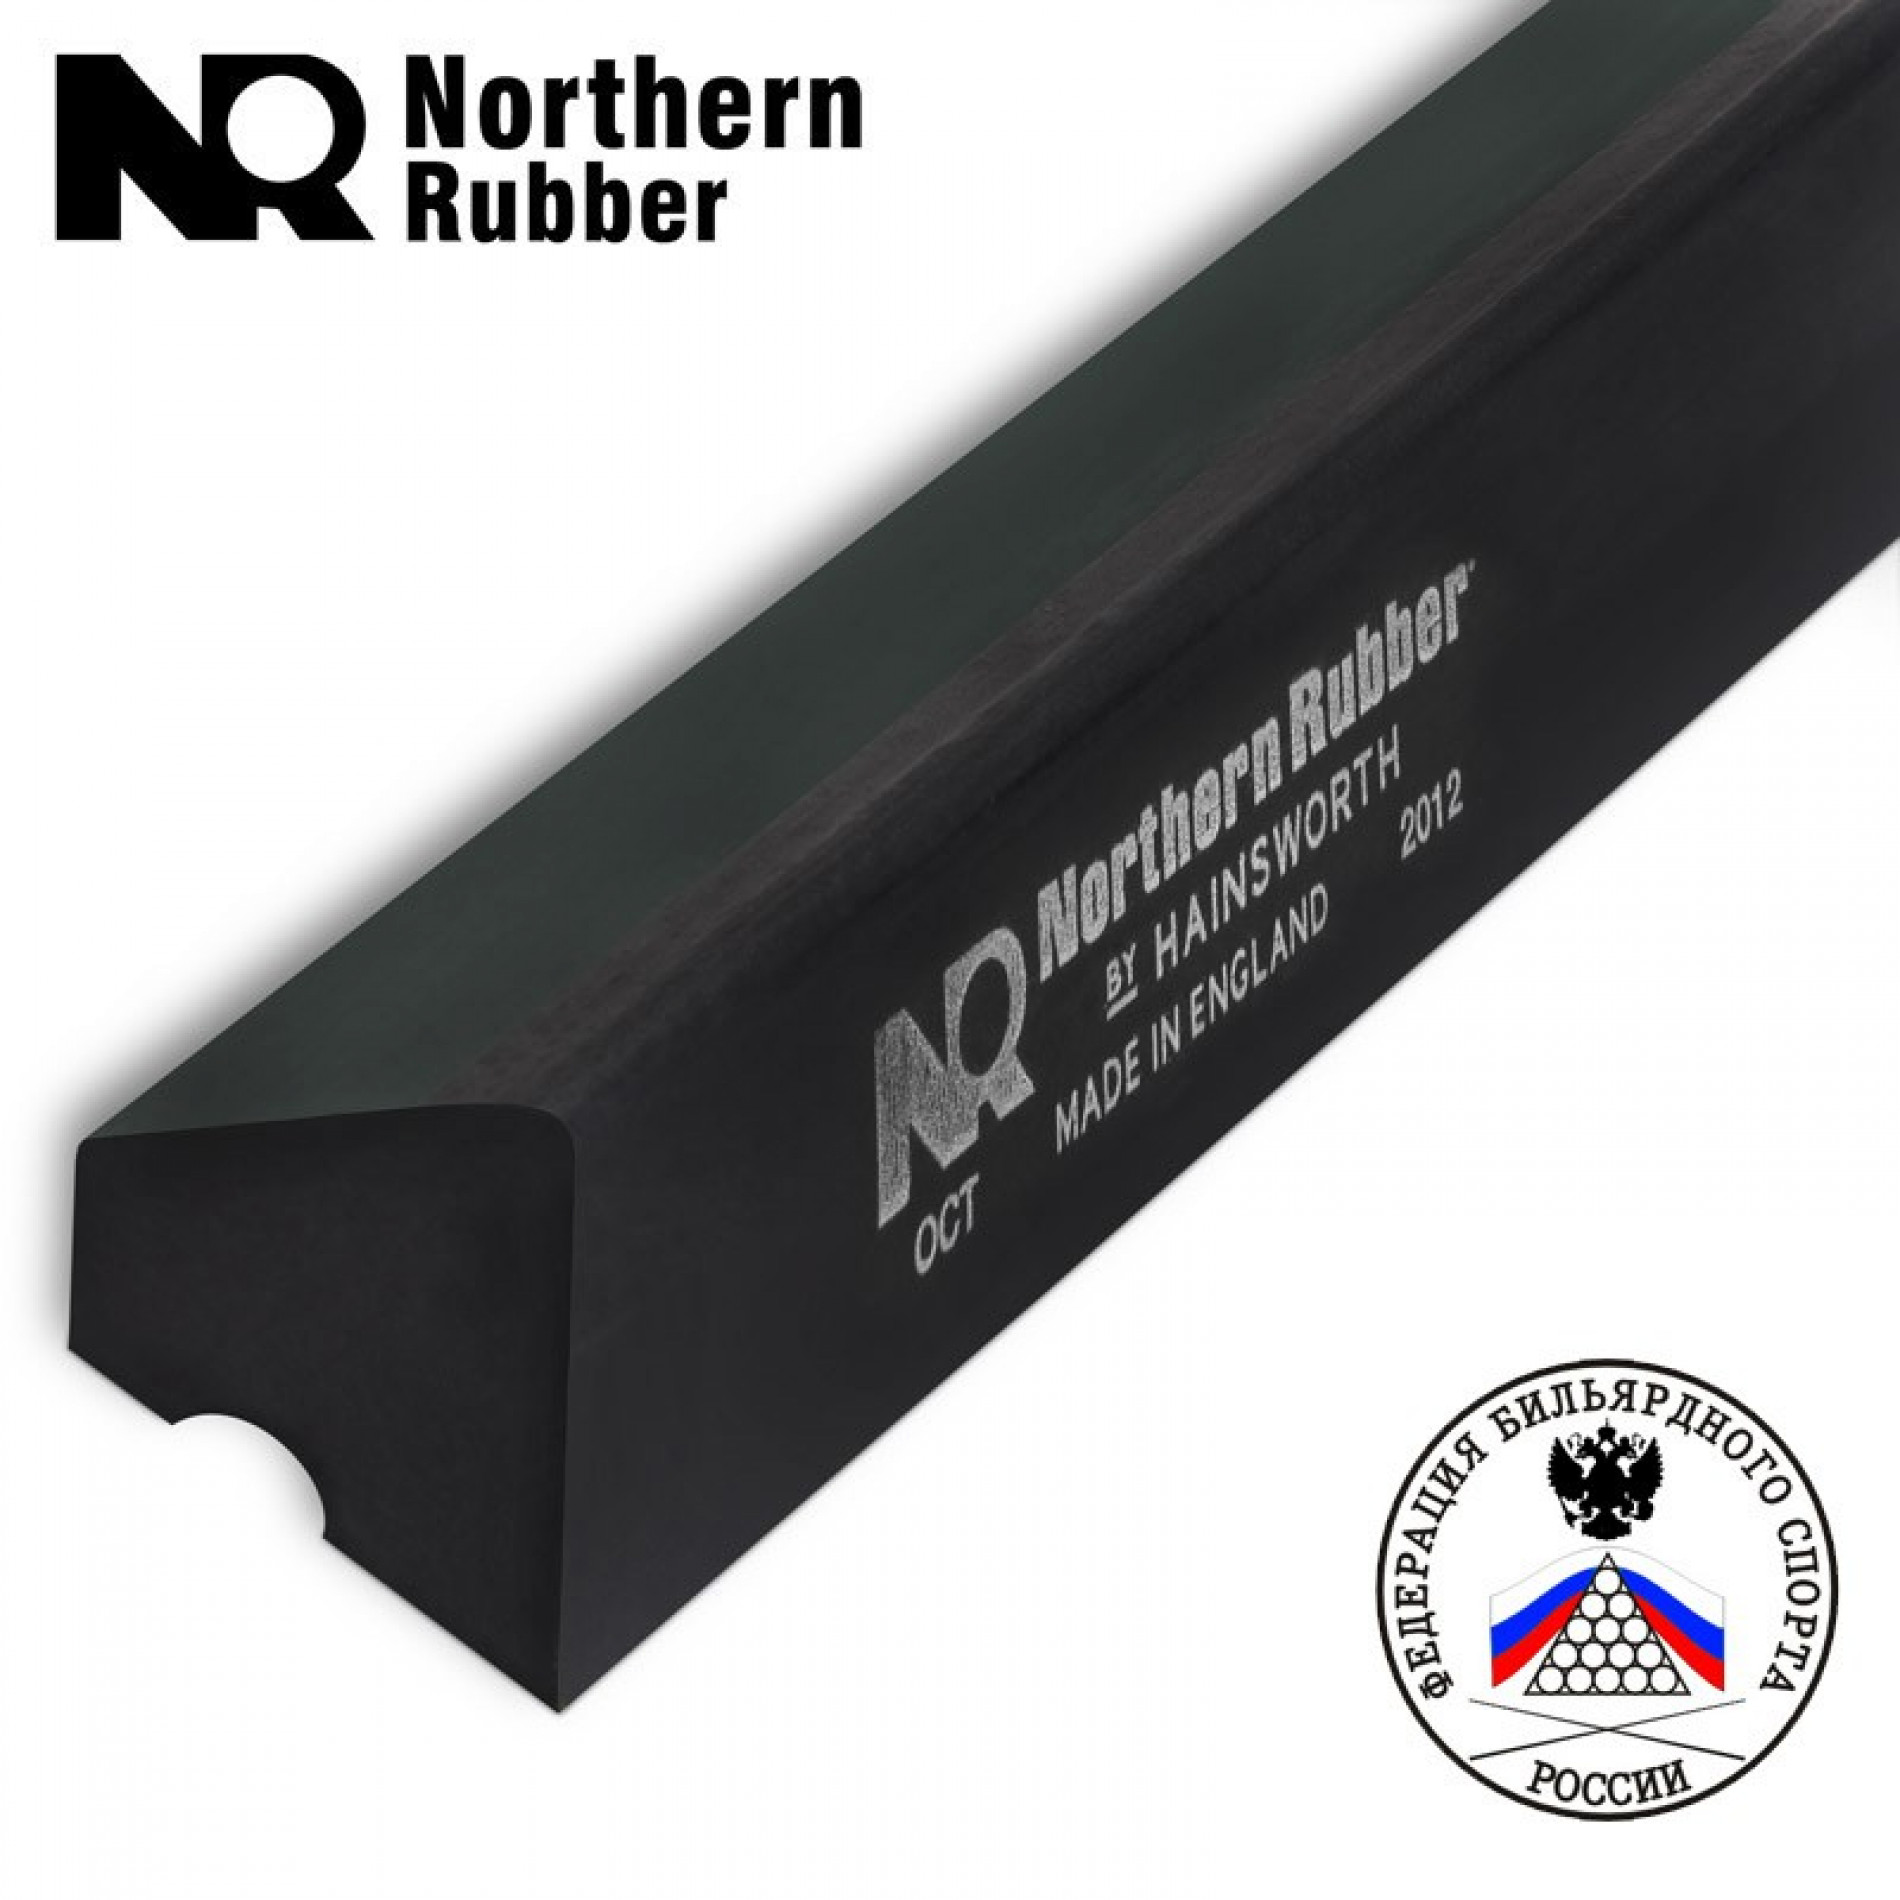 РЕЗИНА ДЛЯ БОРТОВ NORTHERN RUBBER PYRAMID U-118 182СМ 12ФТ 6ШТ.